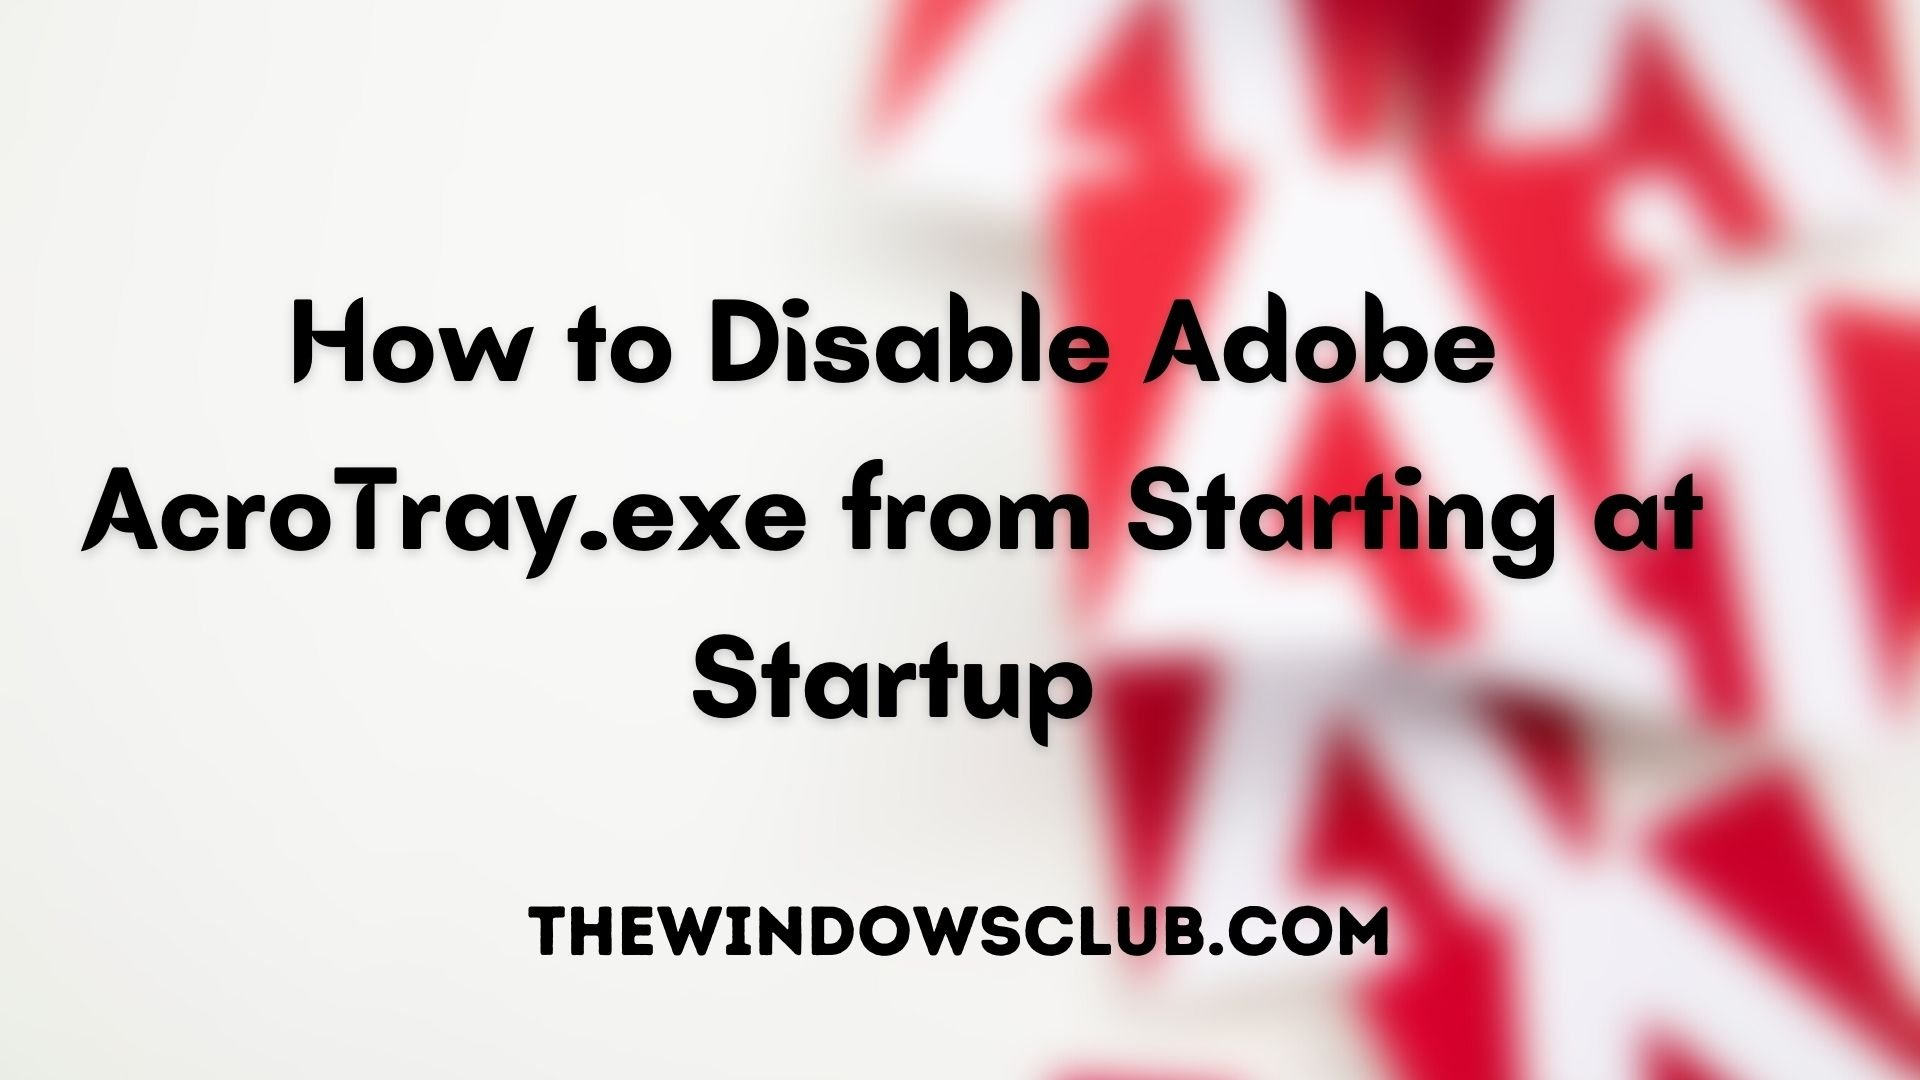 How to Disable Adobe AcroTray.exe from Starting at Startup